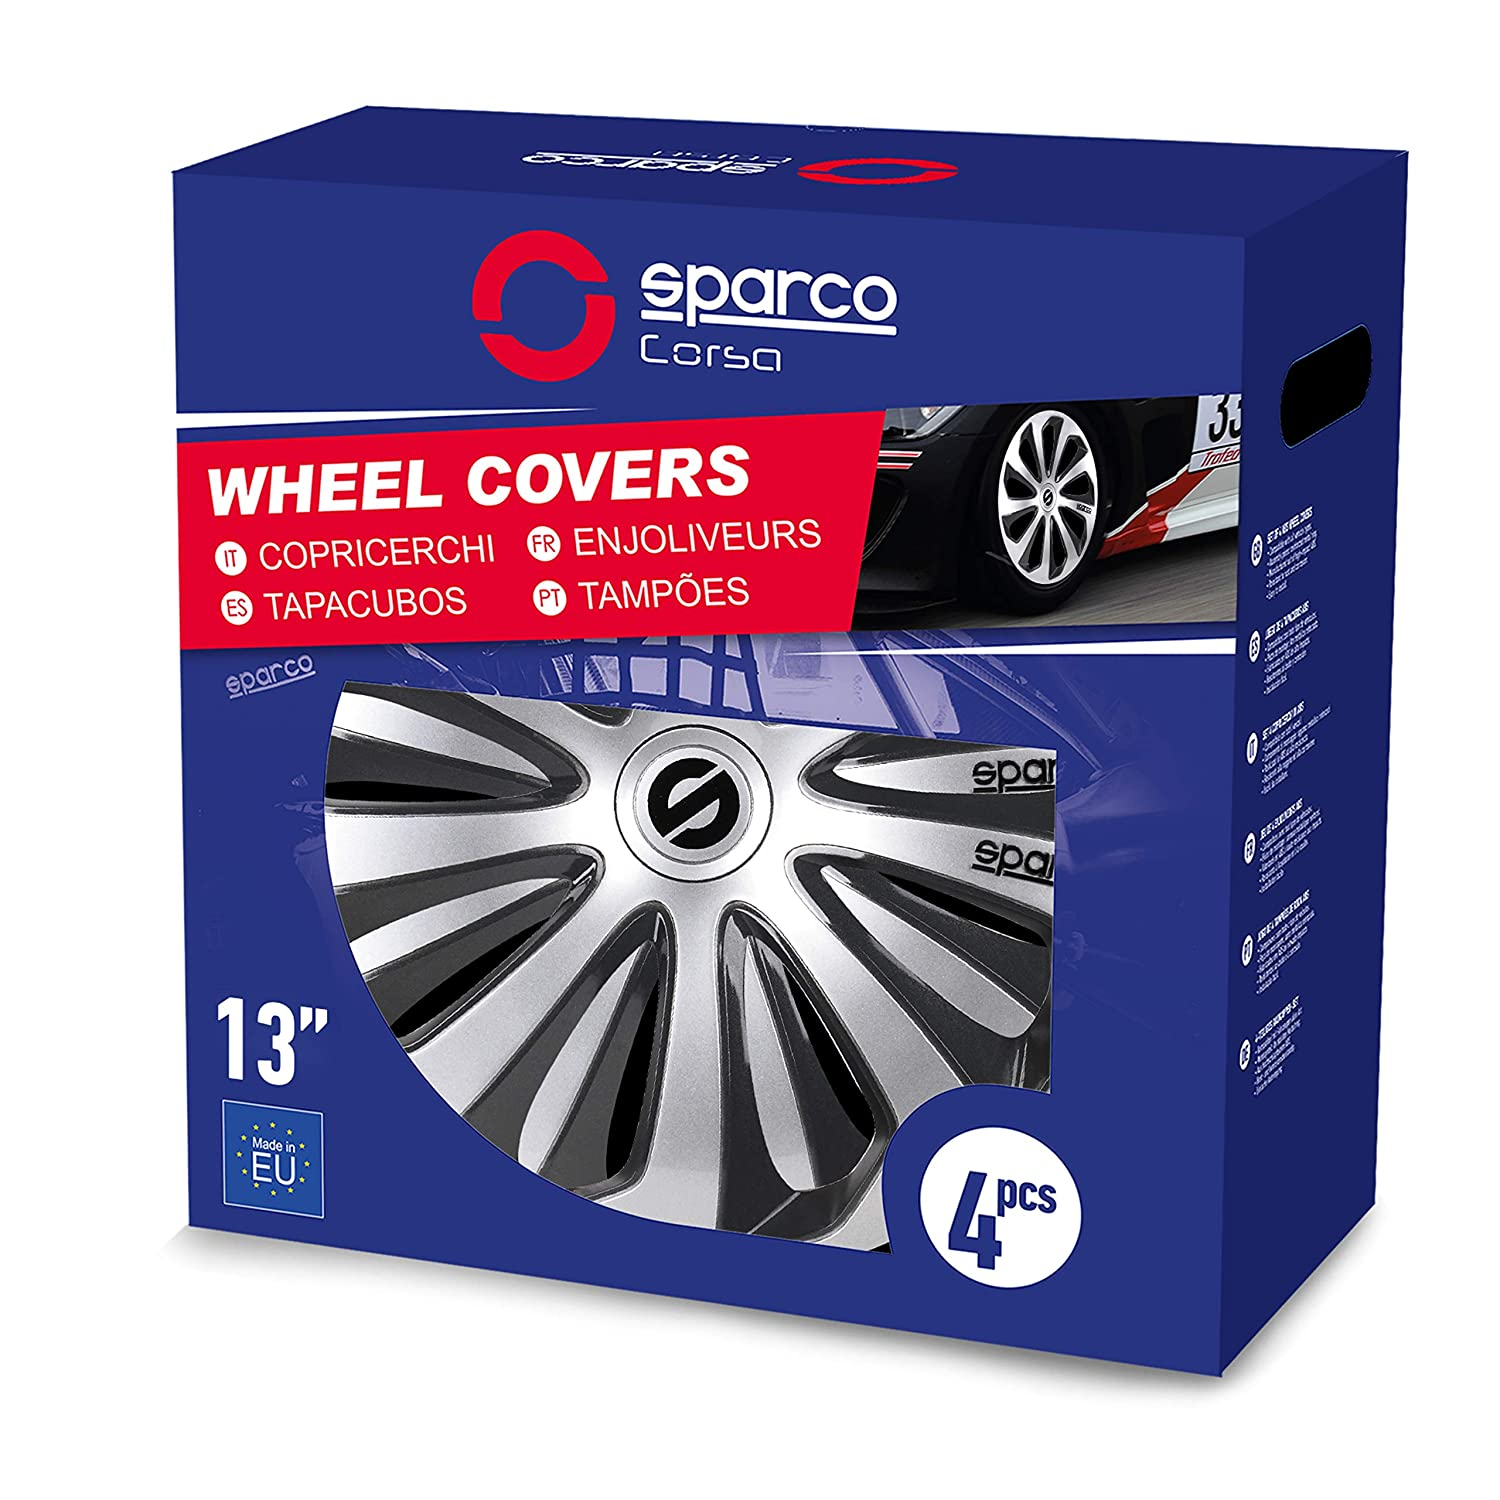 Amazon.com: Sparco SPC1373SVGR Sicilia Wheel Covers, Silver/Grey, Set of 4, 13